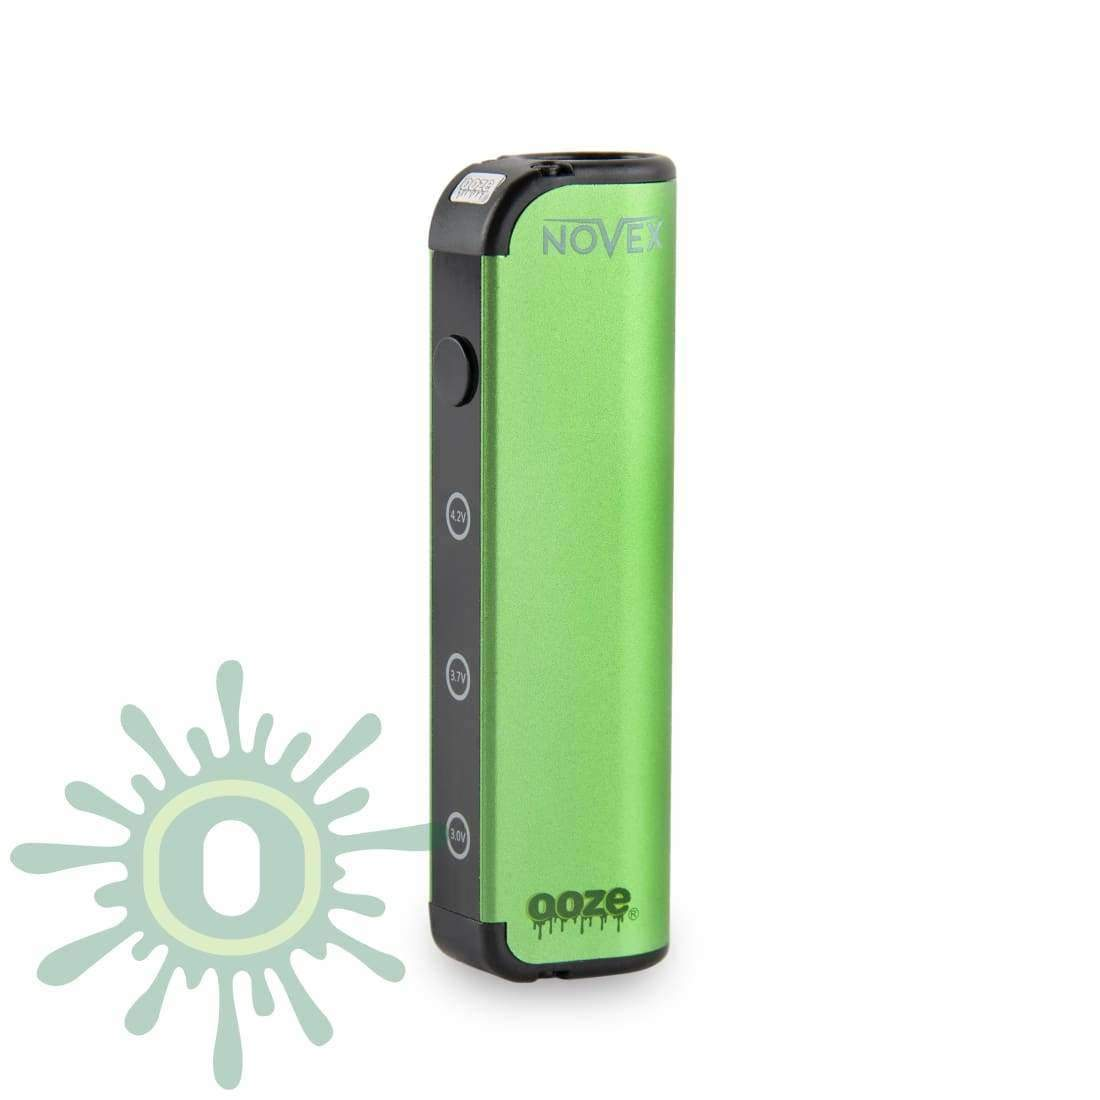 Ooze Novex Extract Vape Battery - Slime Green